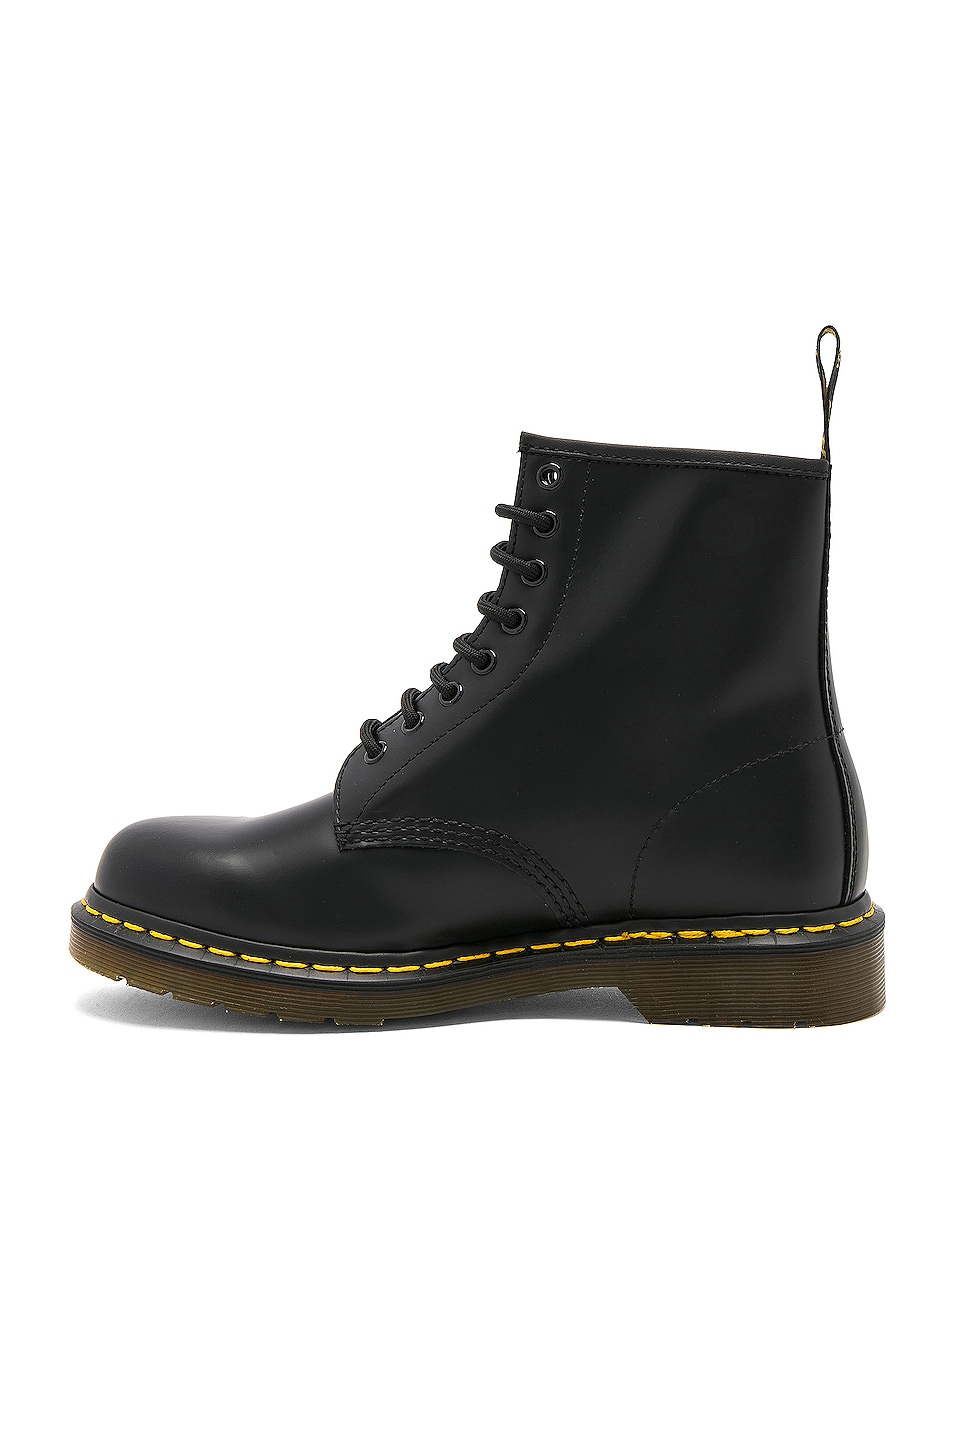 Image 5 of Dr. Martens 1460 8 Eye Leather Boots in Black